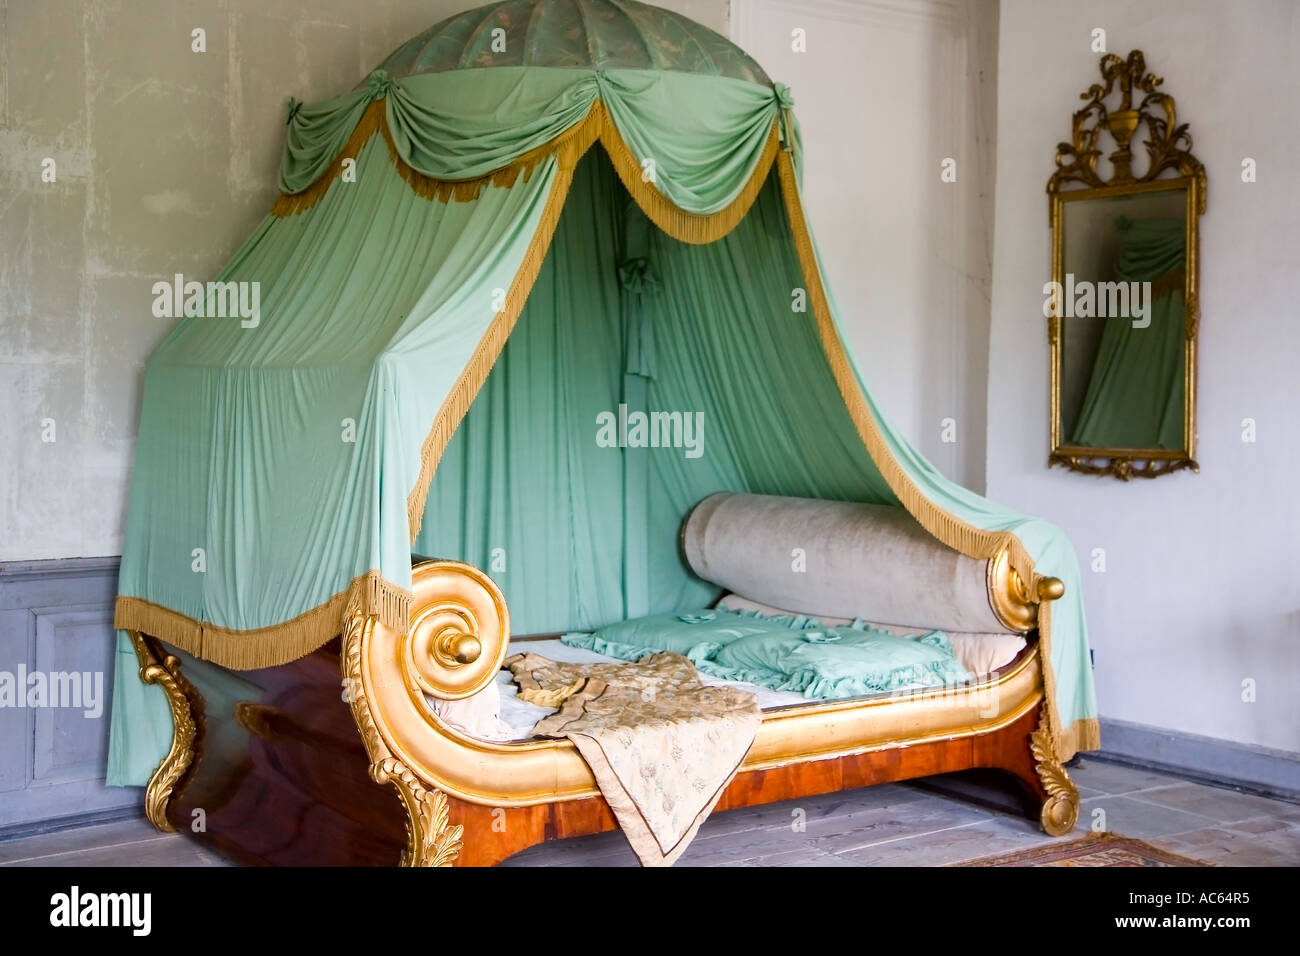 Old canopy bed - Stock Image